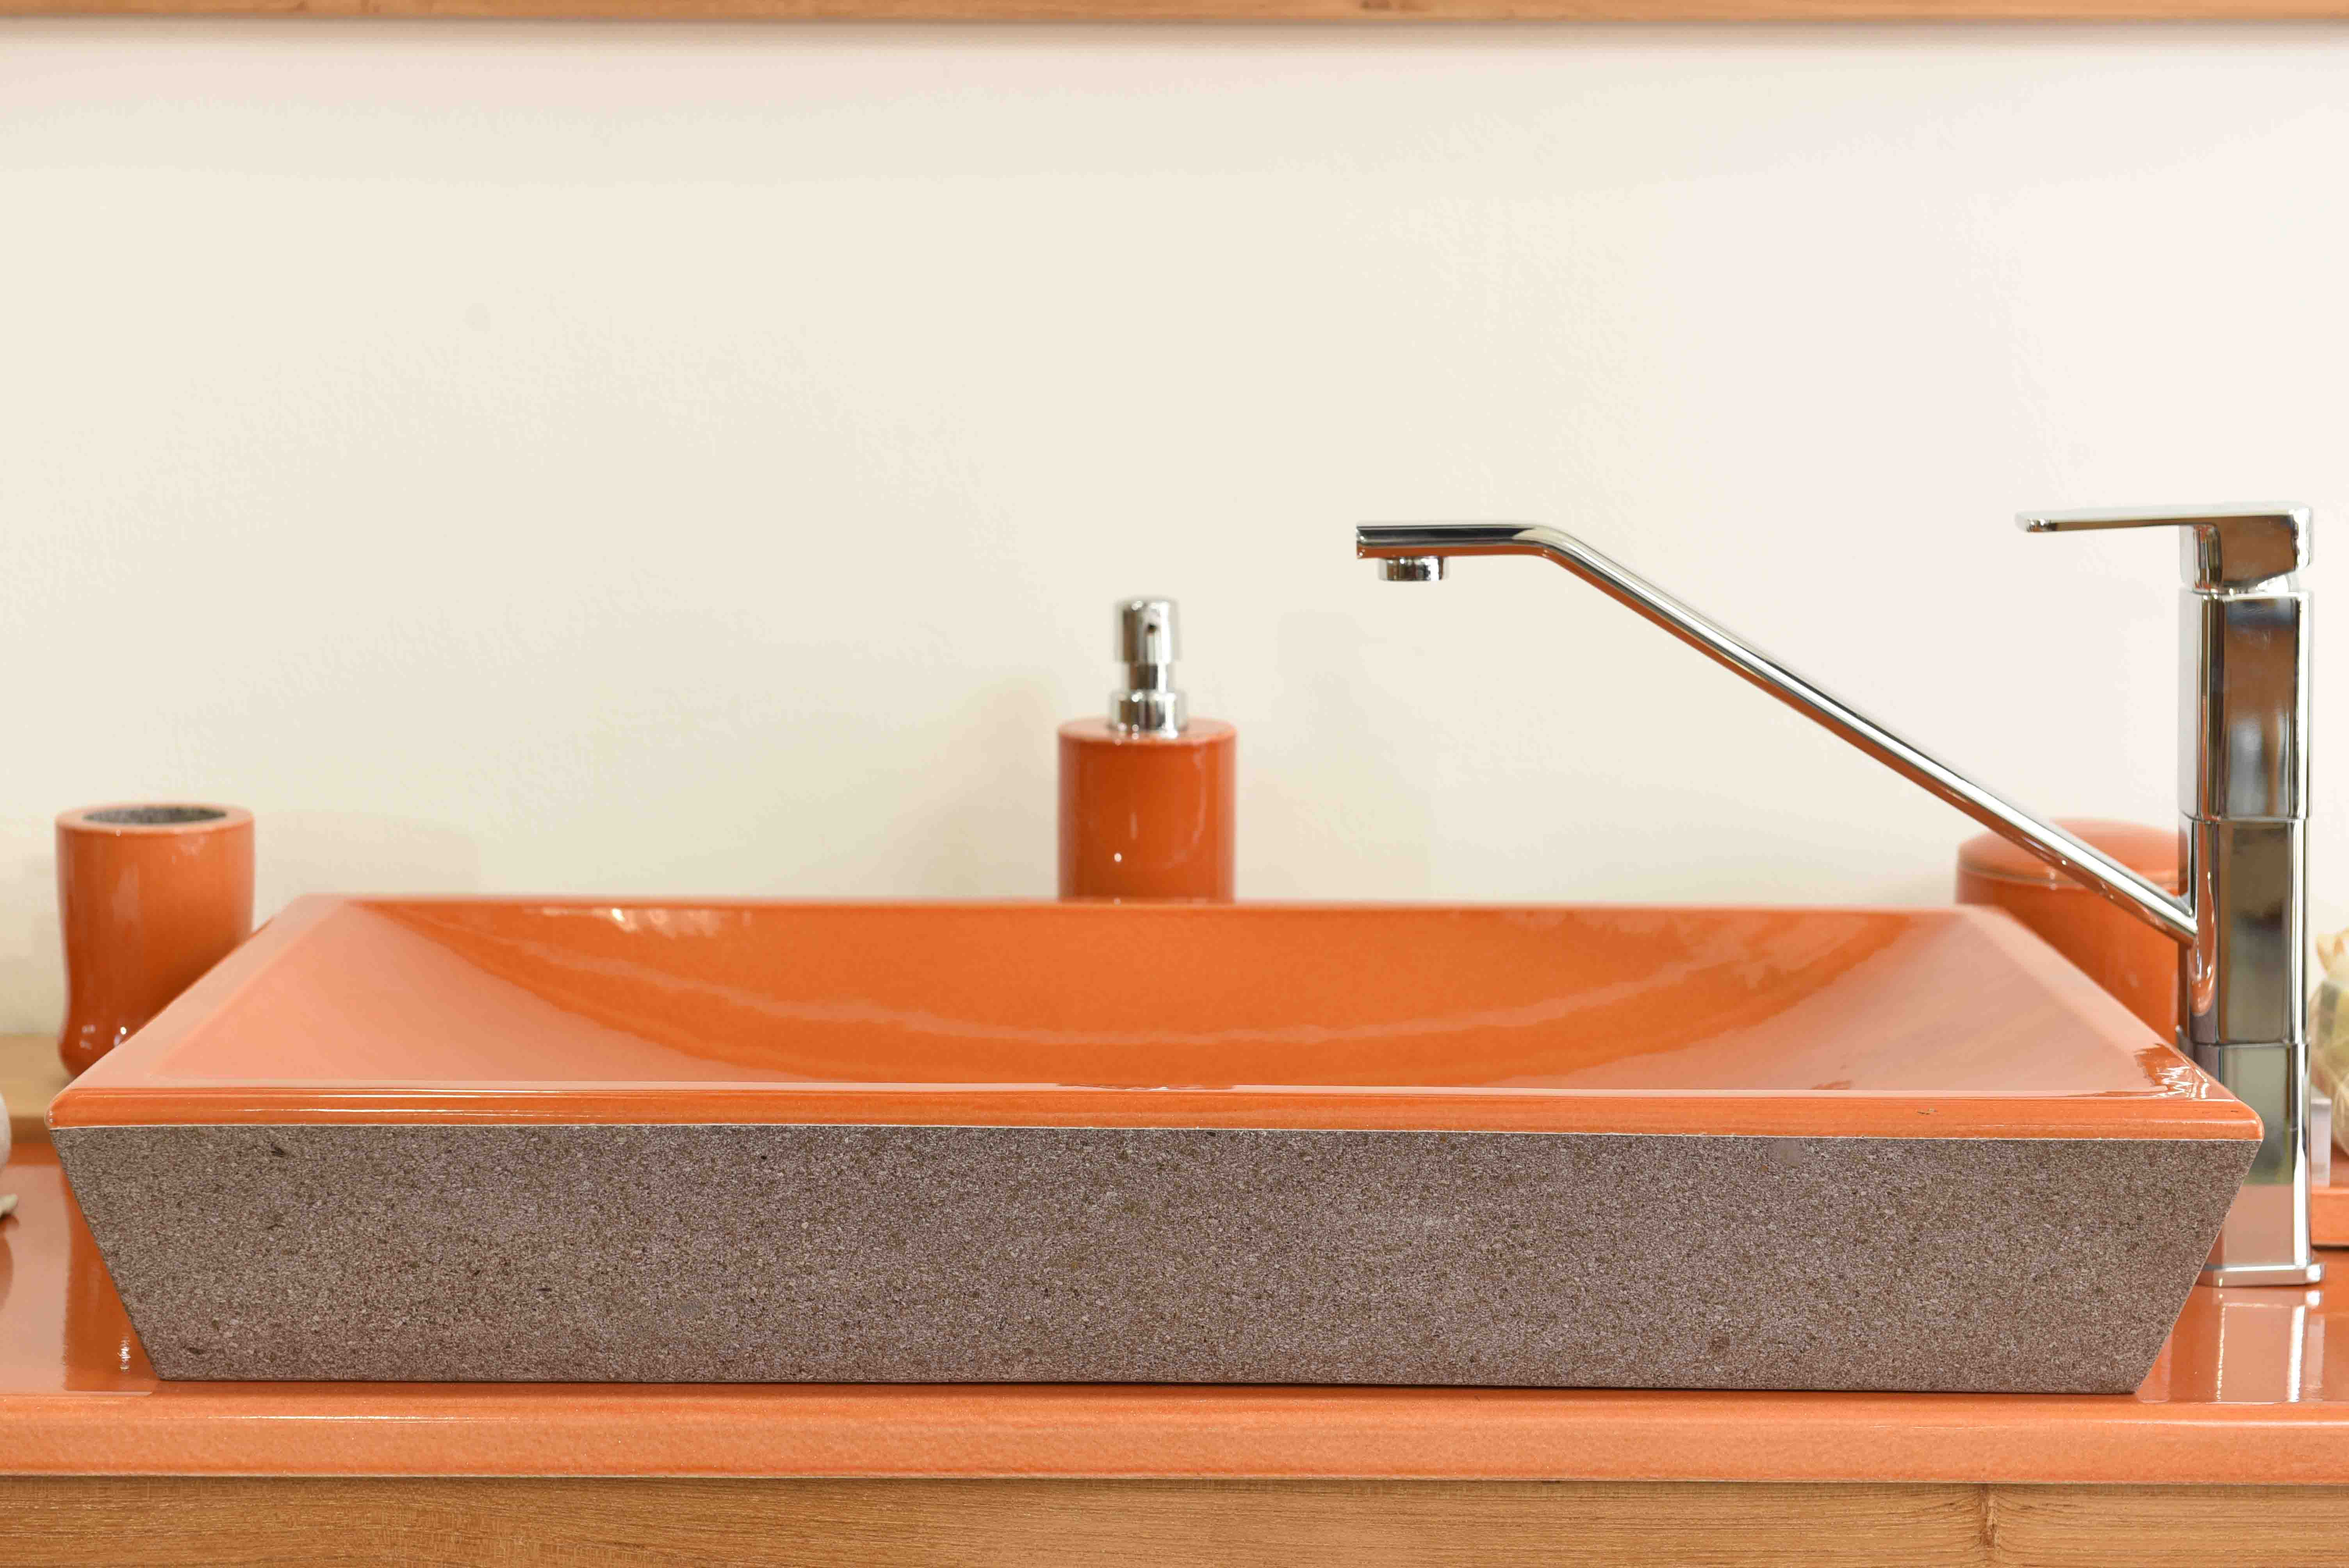 Sink-Orange-zoom-big-innovation-colored-bois-teak-nature-couleur-lave-volcan-émaille-céramique-France-Luxe